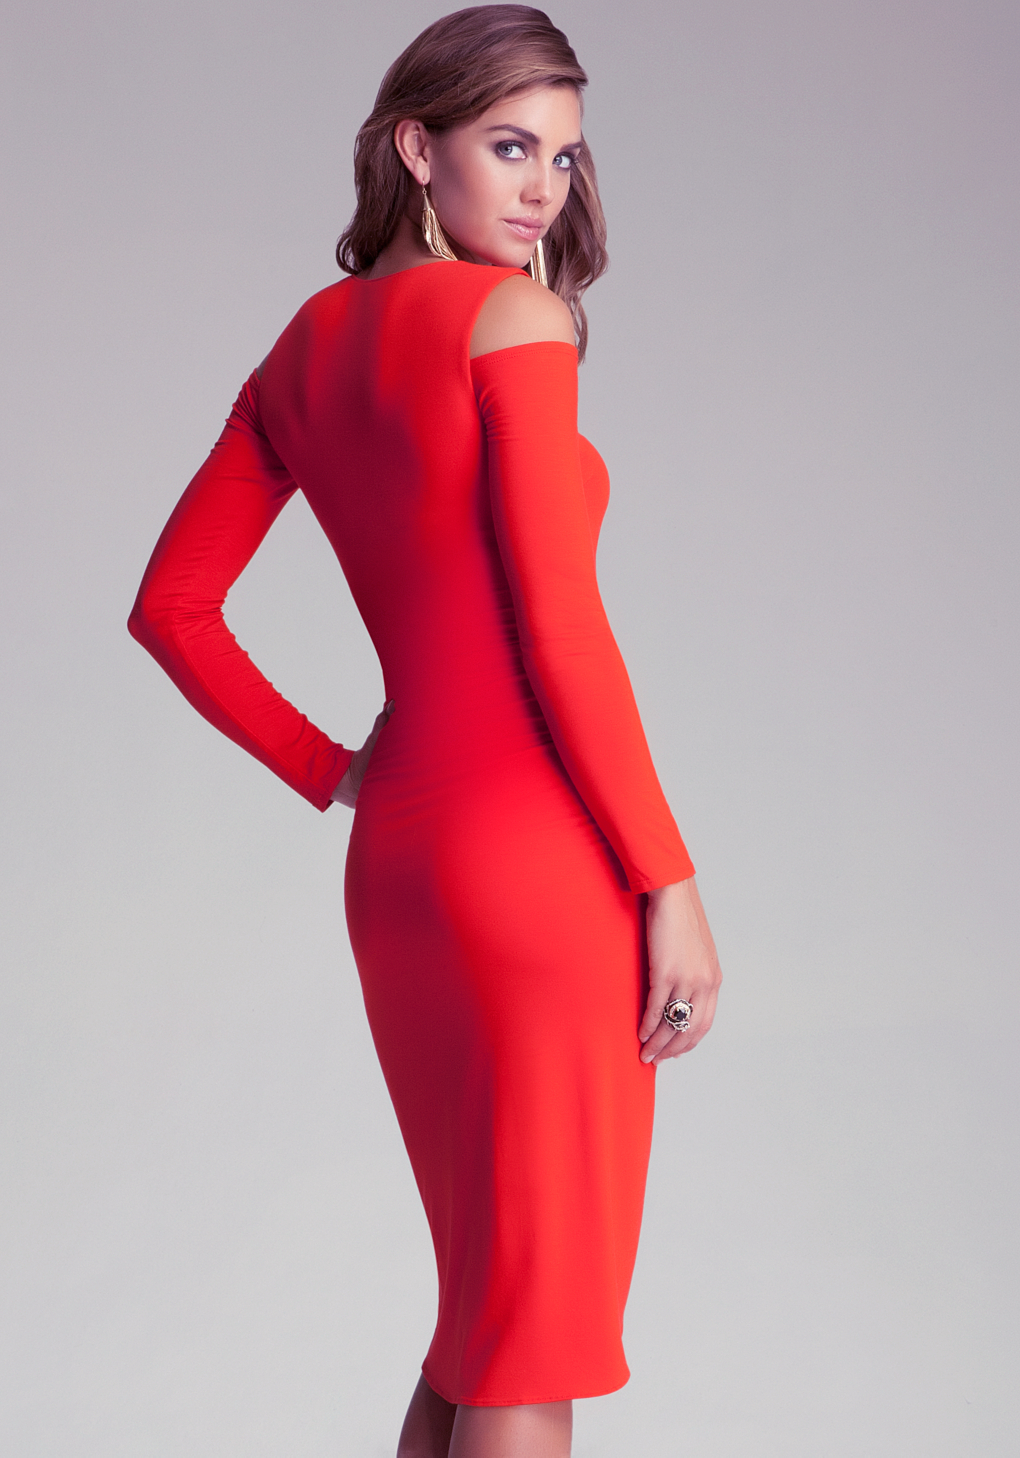 Dress: Bebe Emma Cold Shoulder Wrap Dress In Red